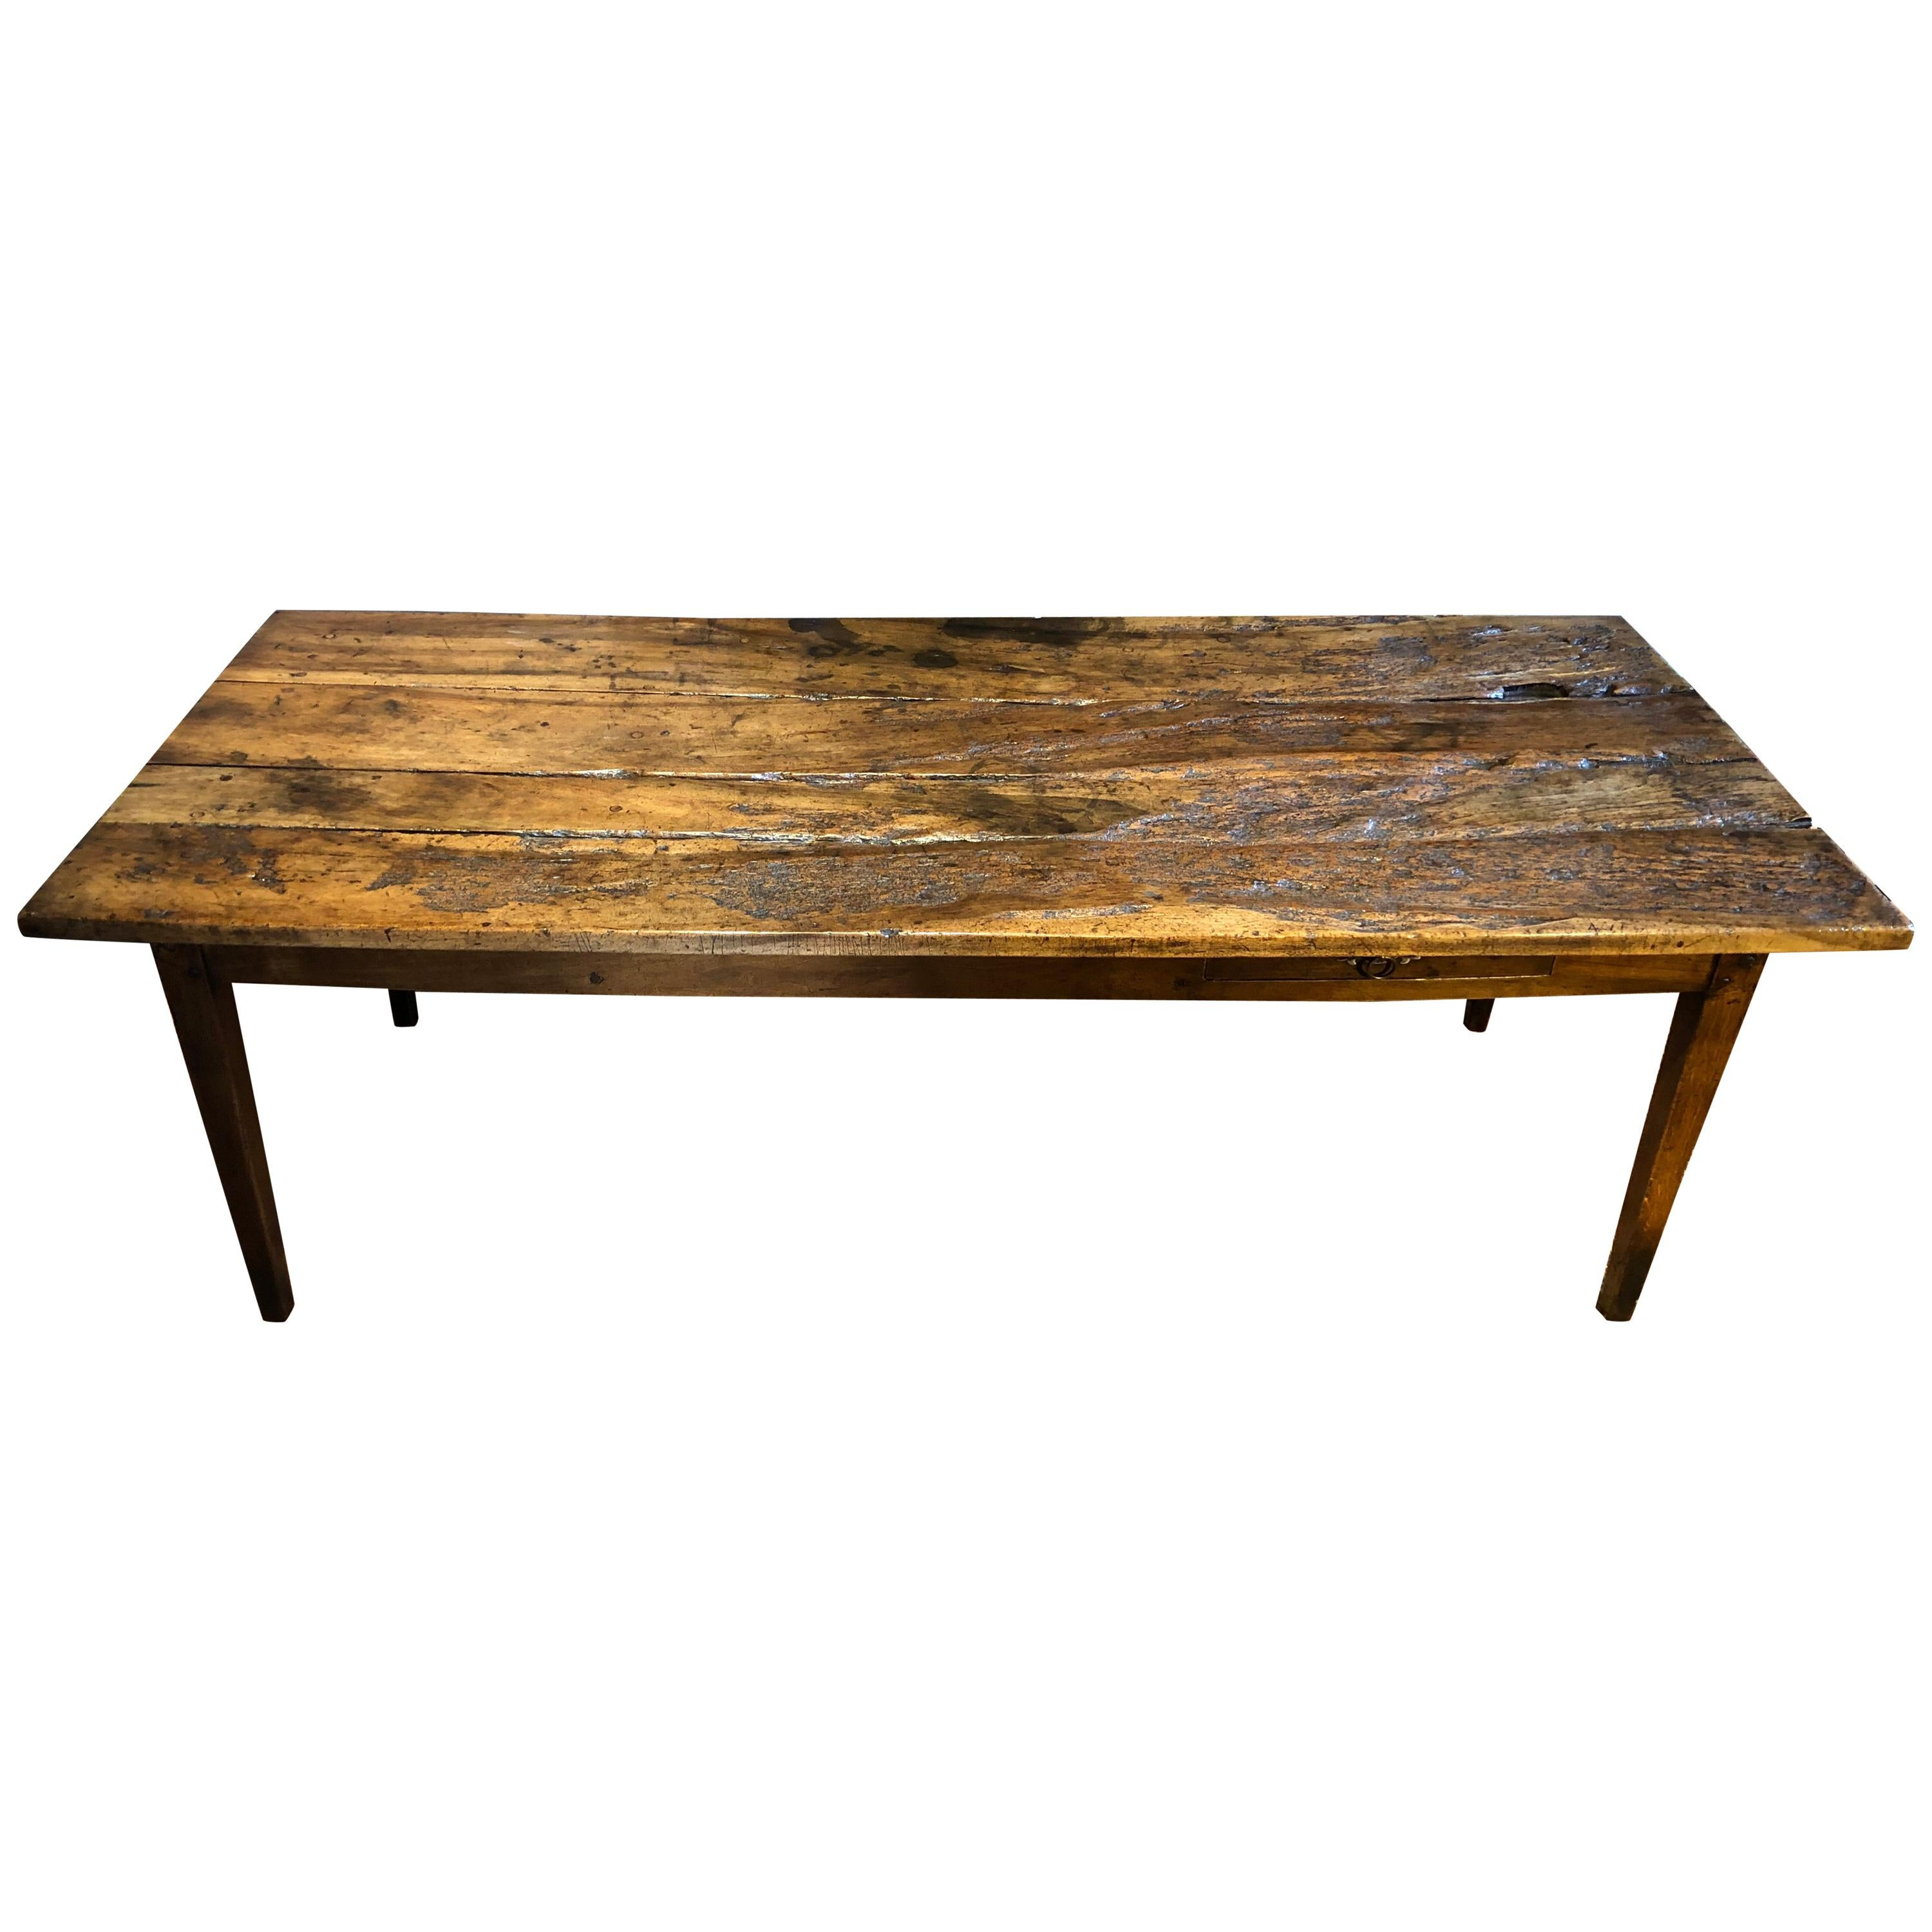 19th Century Rustic French Fruitwood Farm Table